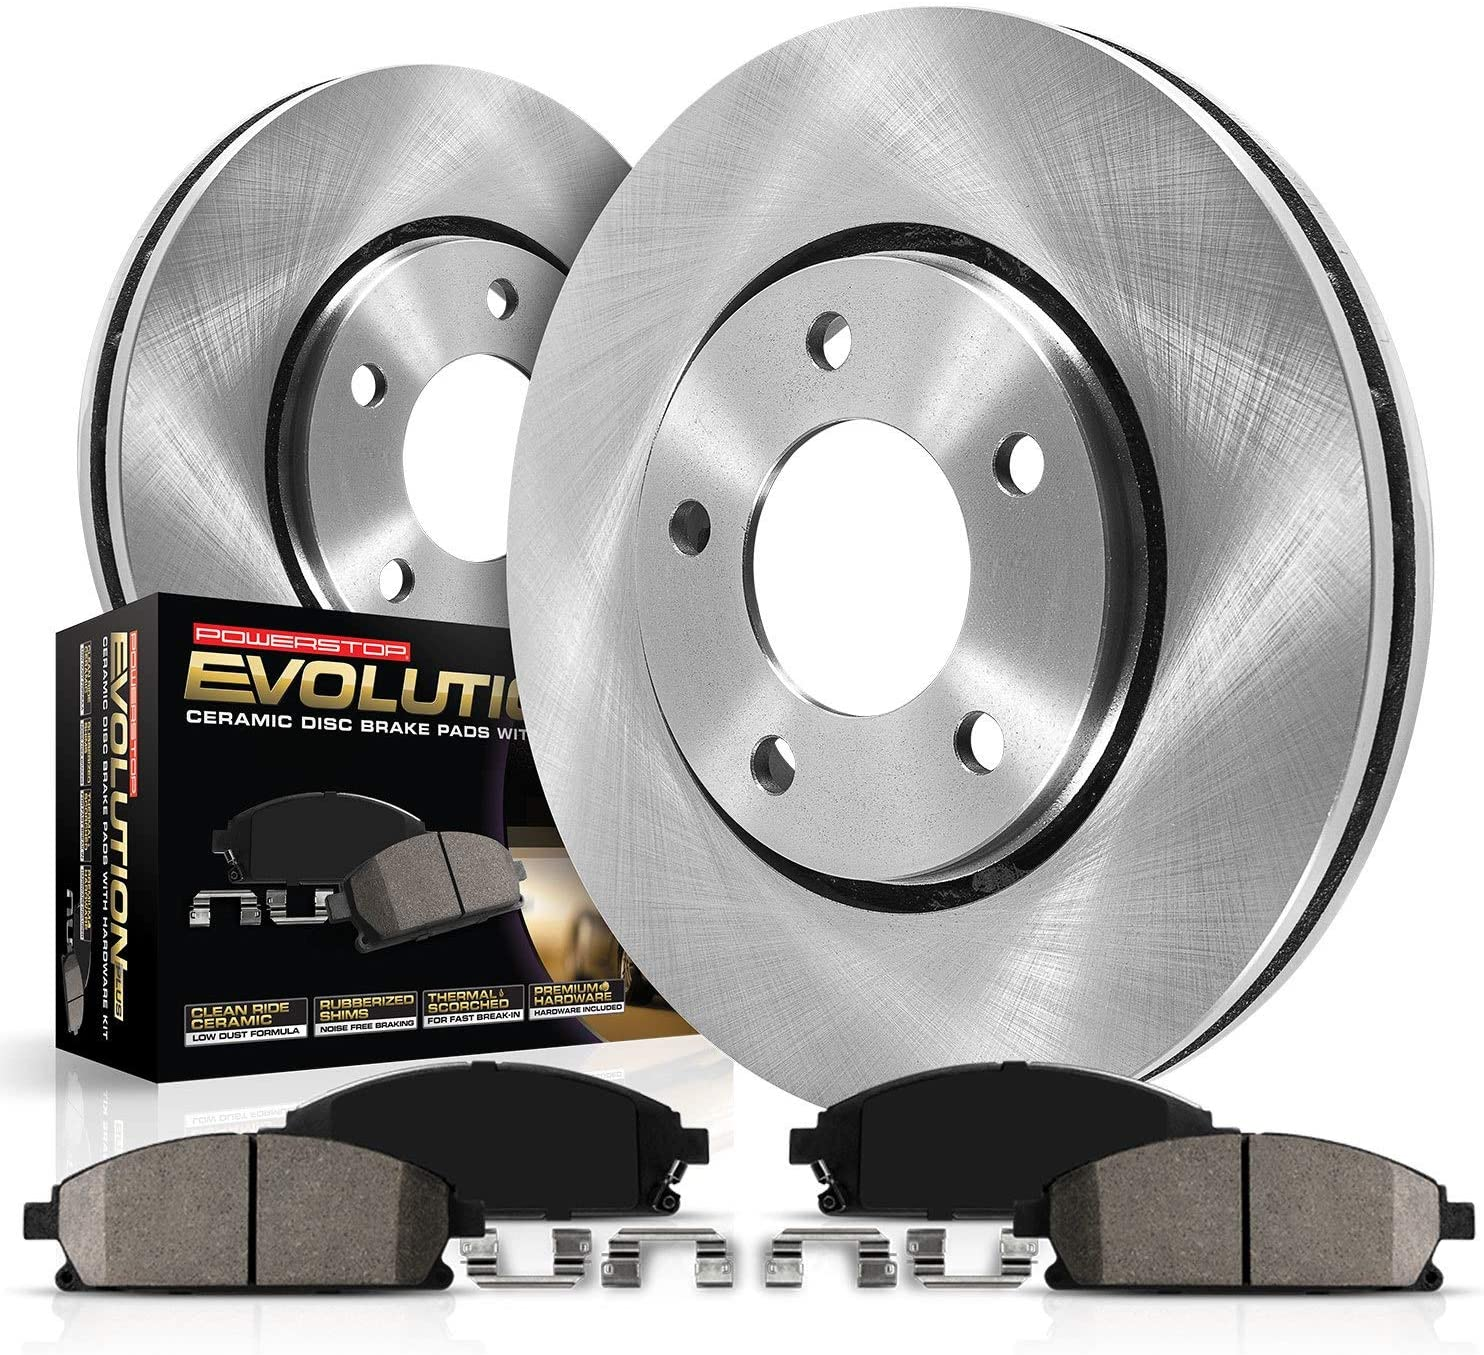 No Hardware Included For Brake Pads Rear Disc Brake Rotors and Ceramic Brake Pads for 2015 Volkswagen Jetta With Two Years Manufacturer Warranty